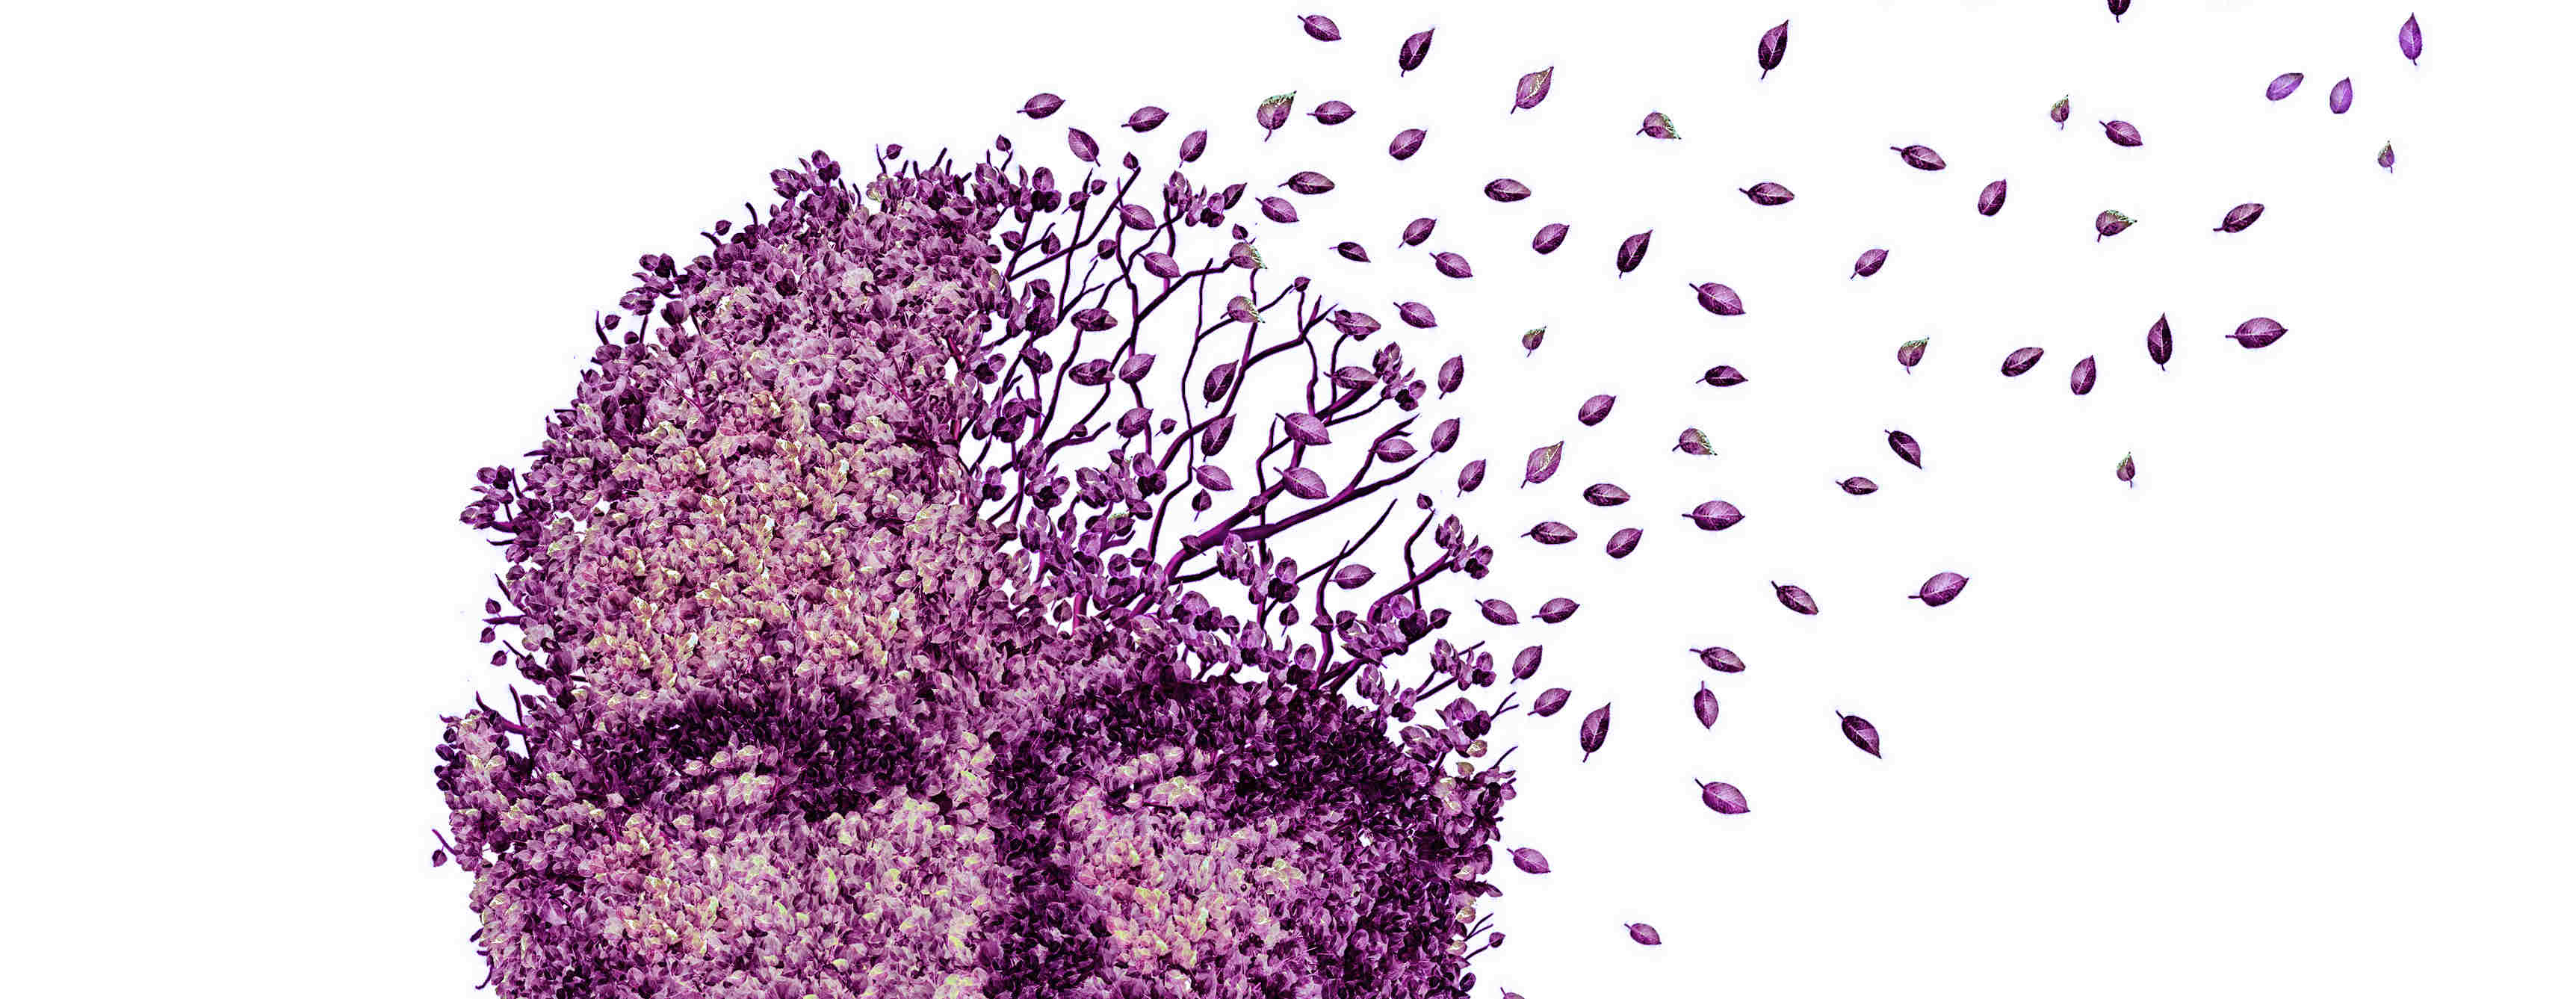 Understanding and respecting the person with dementia